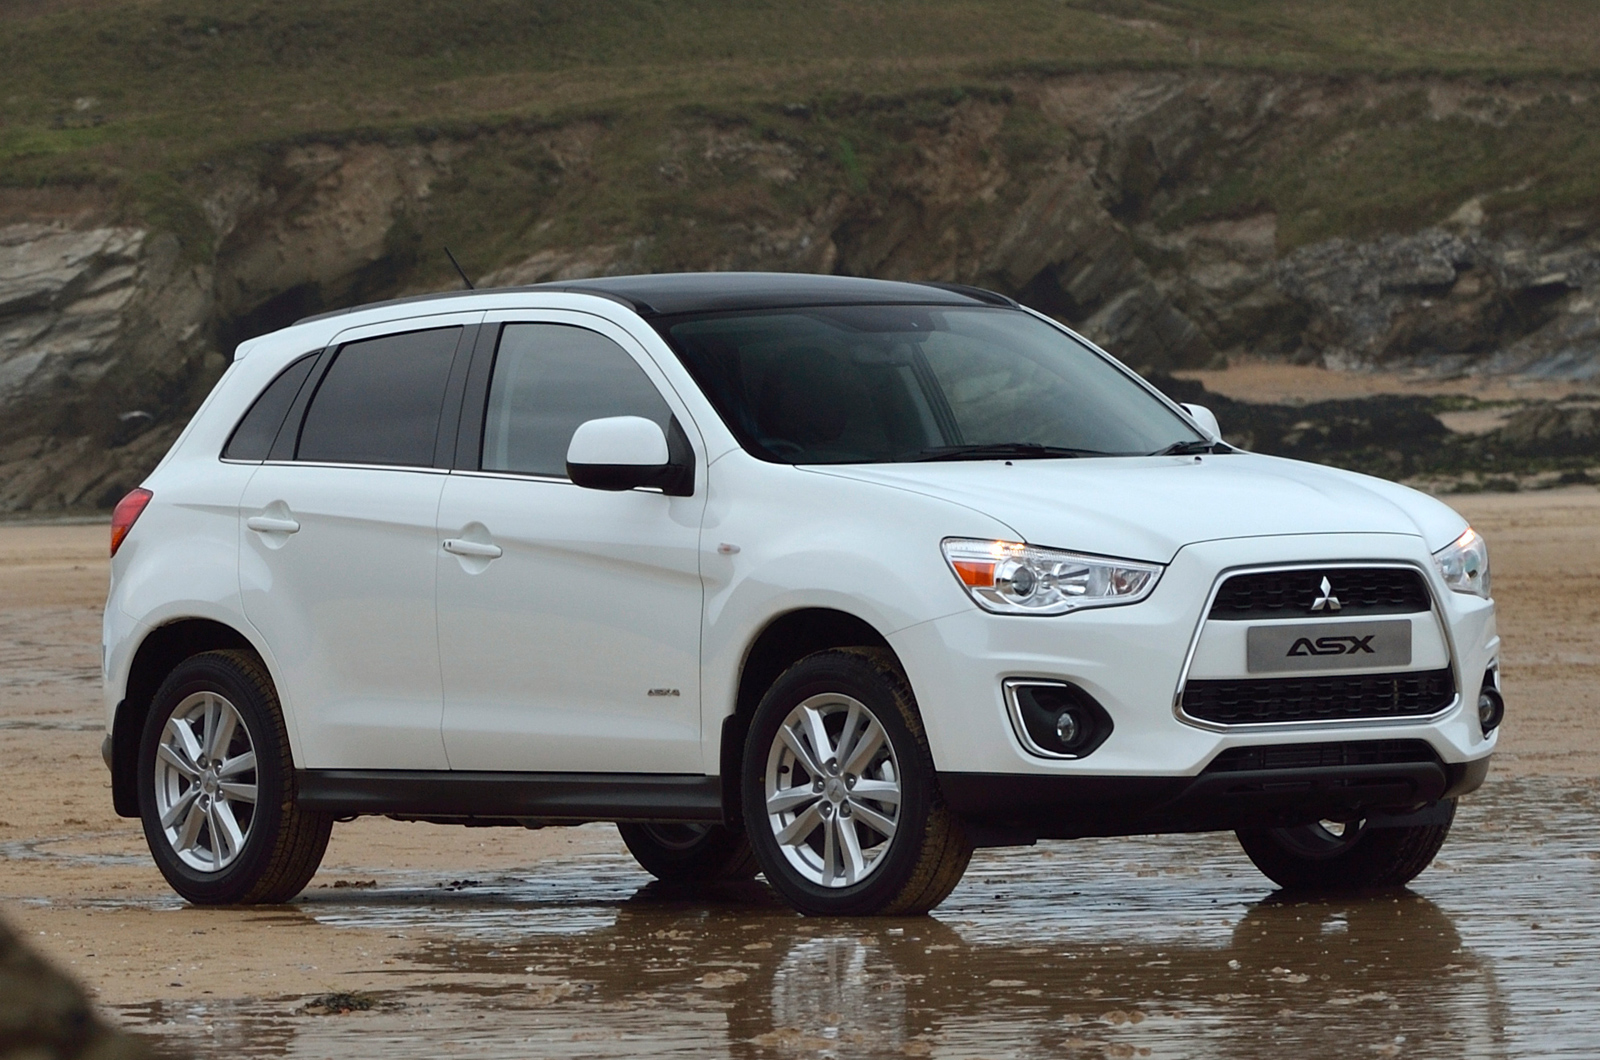 Lewis Auto Sales >> 2014 Mitsubishi ASX 2.2 Di-D Diesel 4WD Automatic first drive review